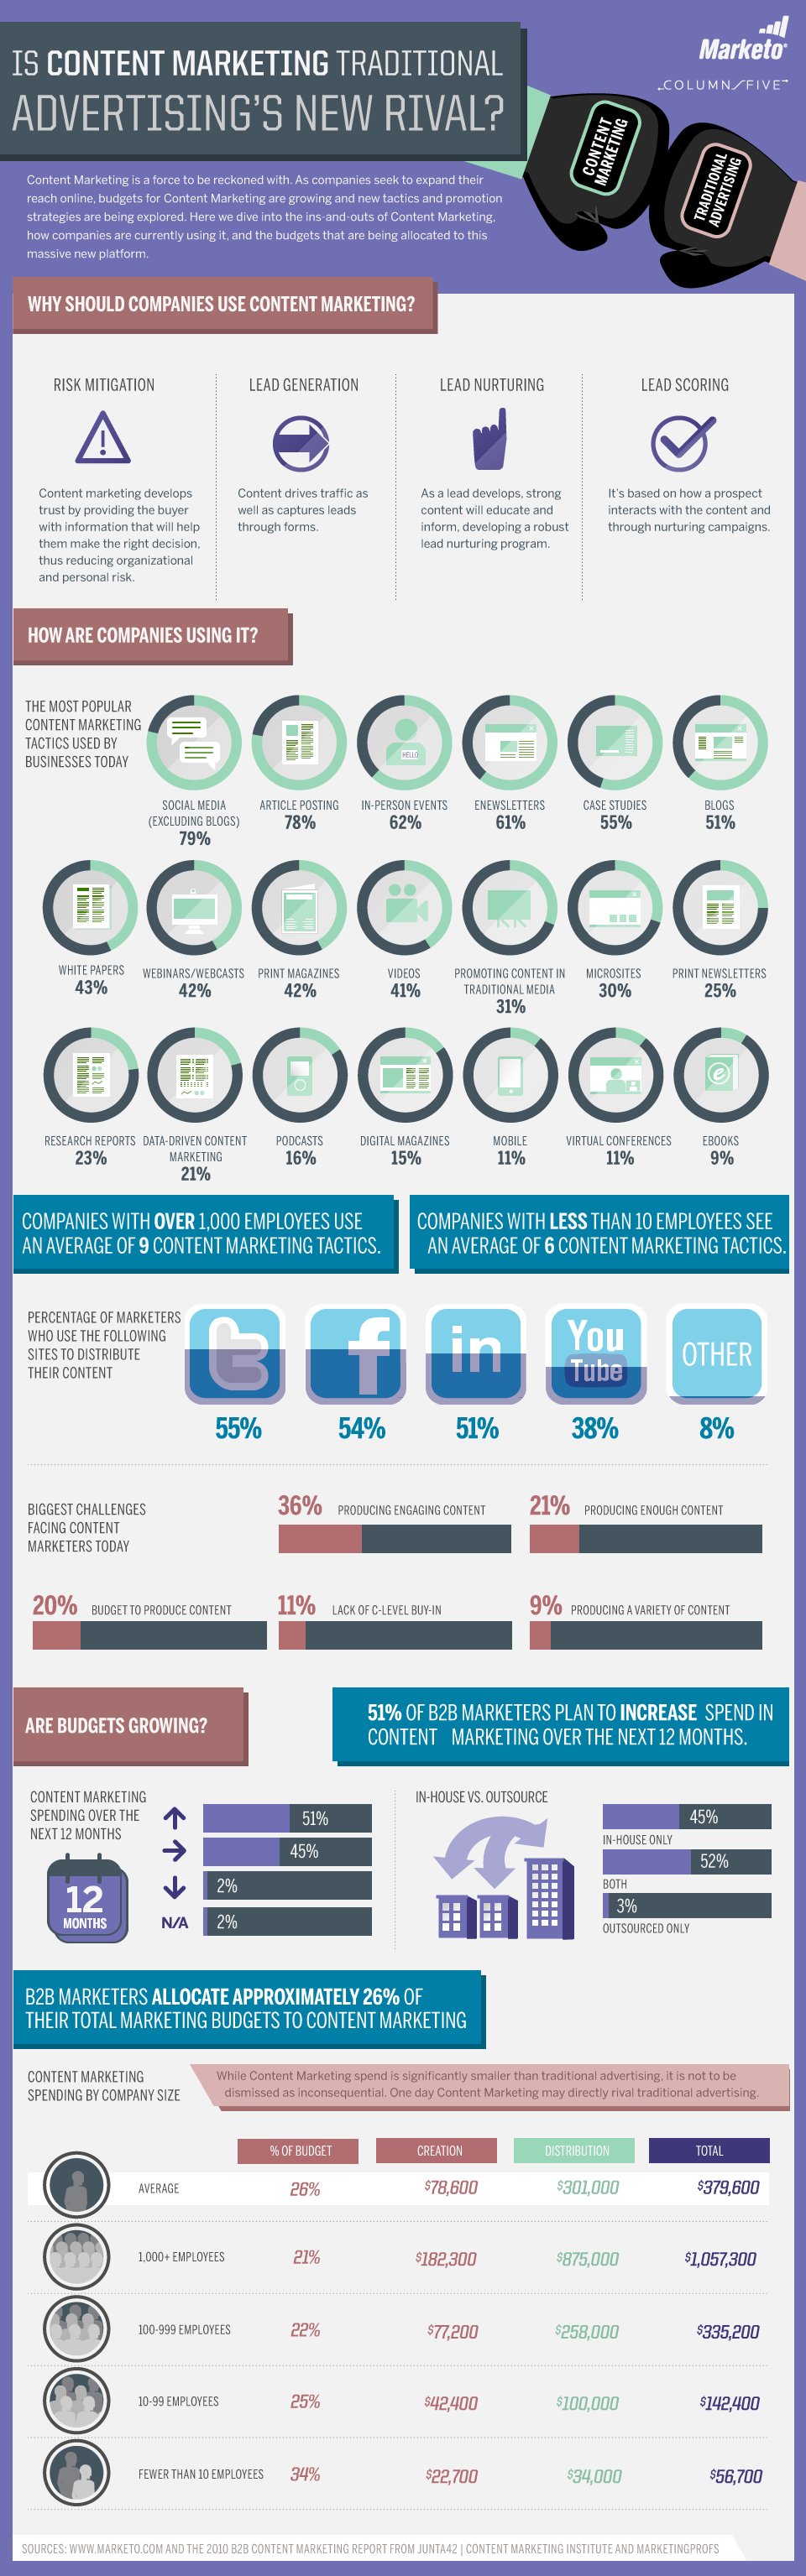 Content Marketing vs. Traditional Advertising Infographic by Marketo